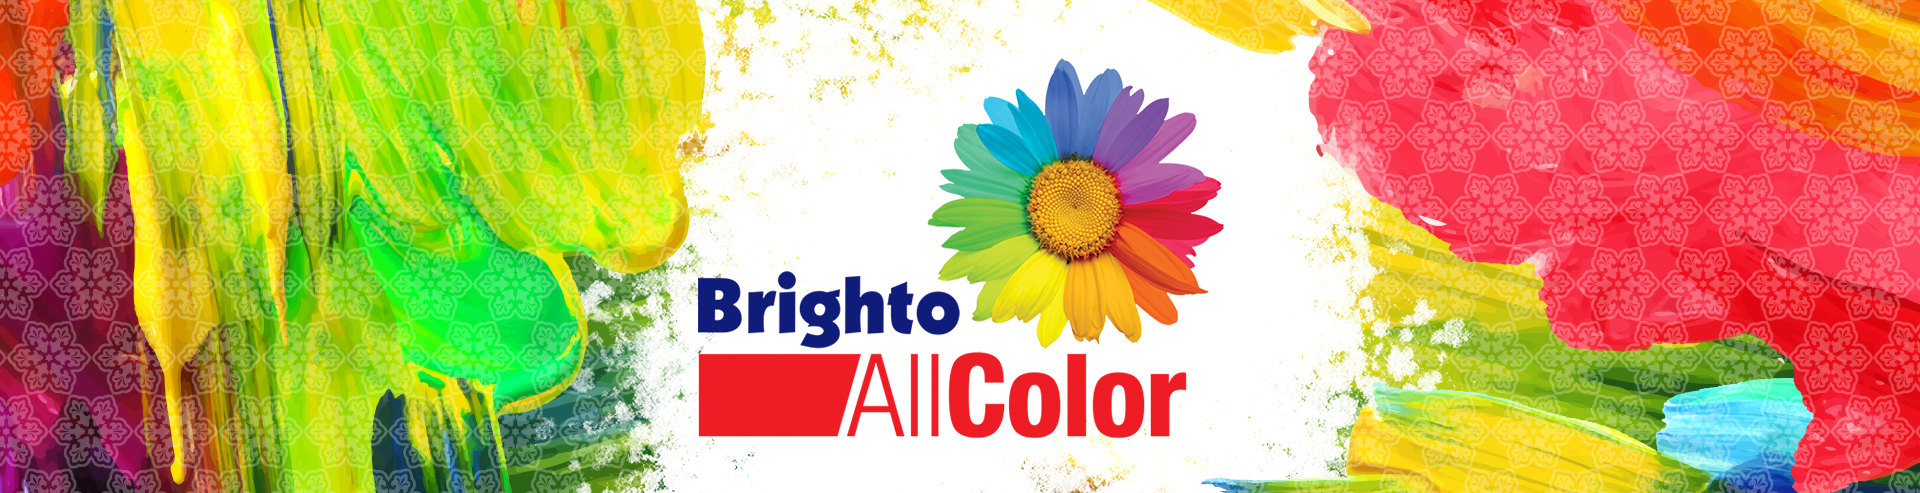 Brighto All Colors